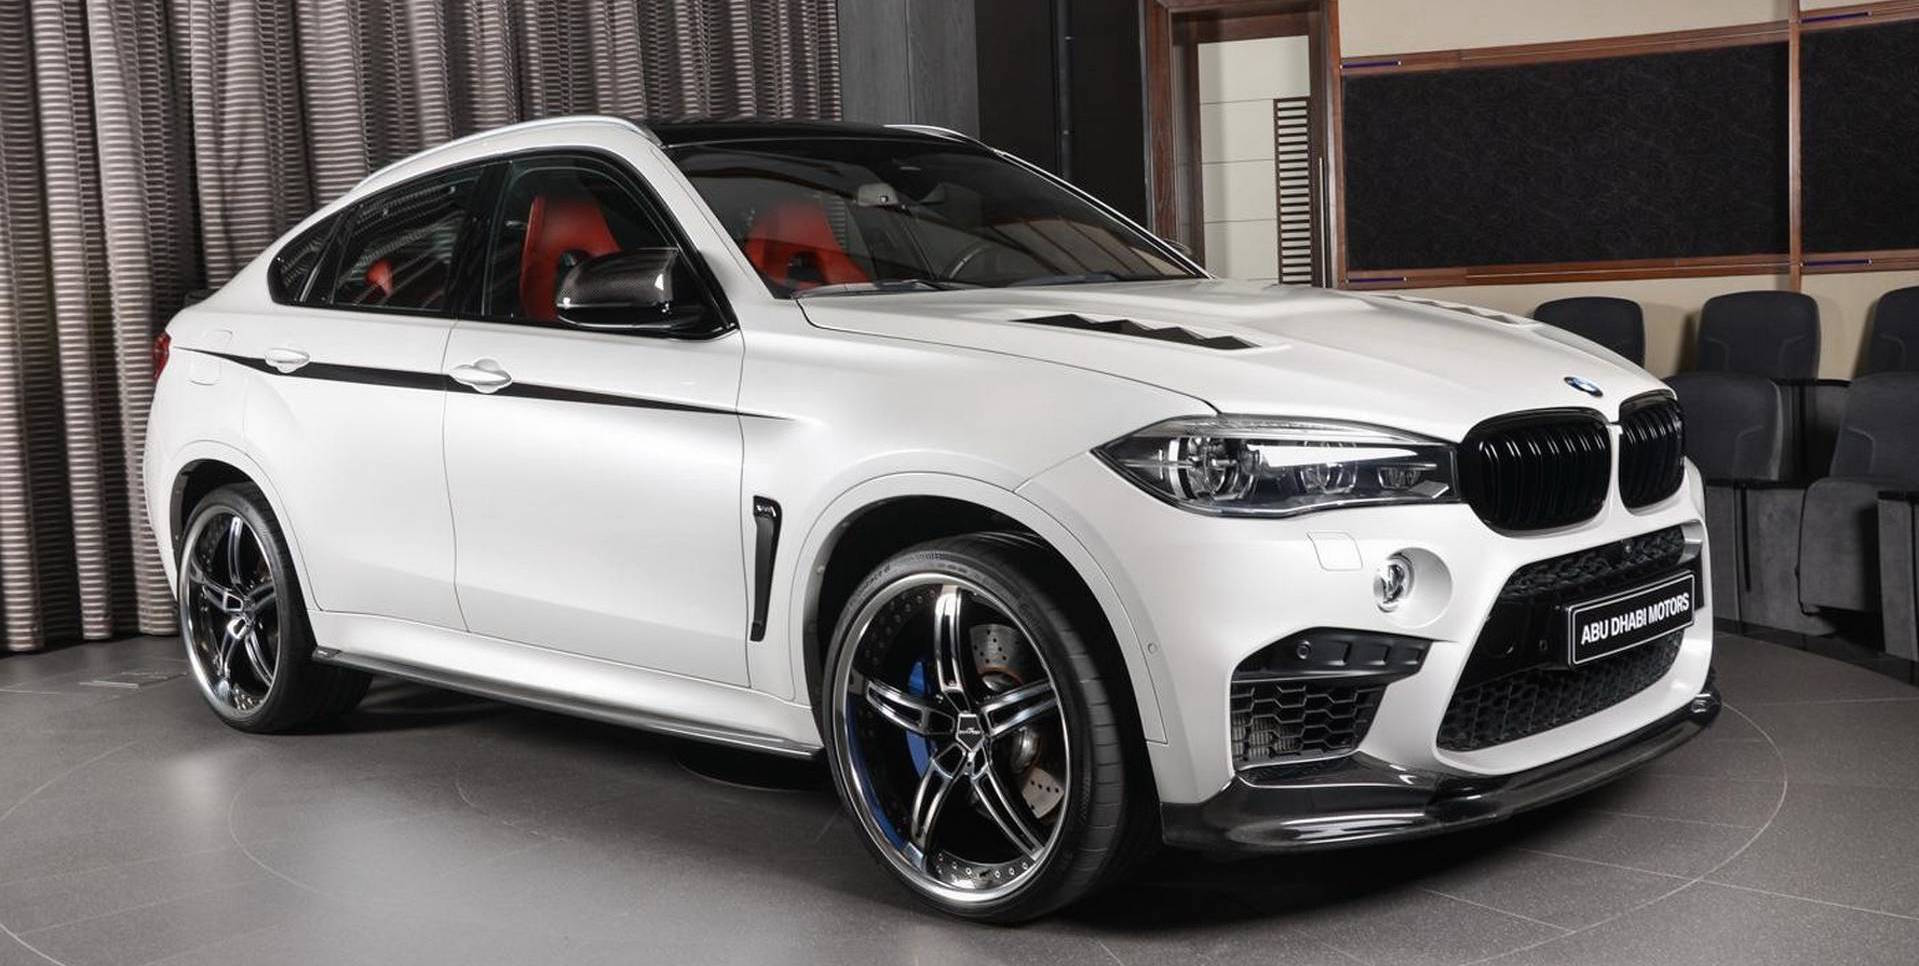 bmw x6 m with 23 inch wheels makes the urus look restrained localis. Black Bedroom Furniture Sets. Home Design Ideas